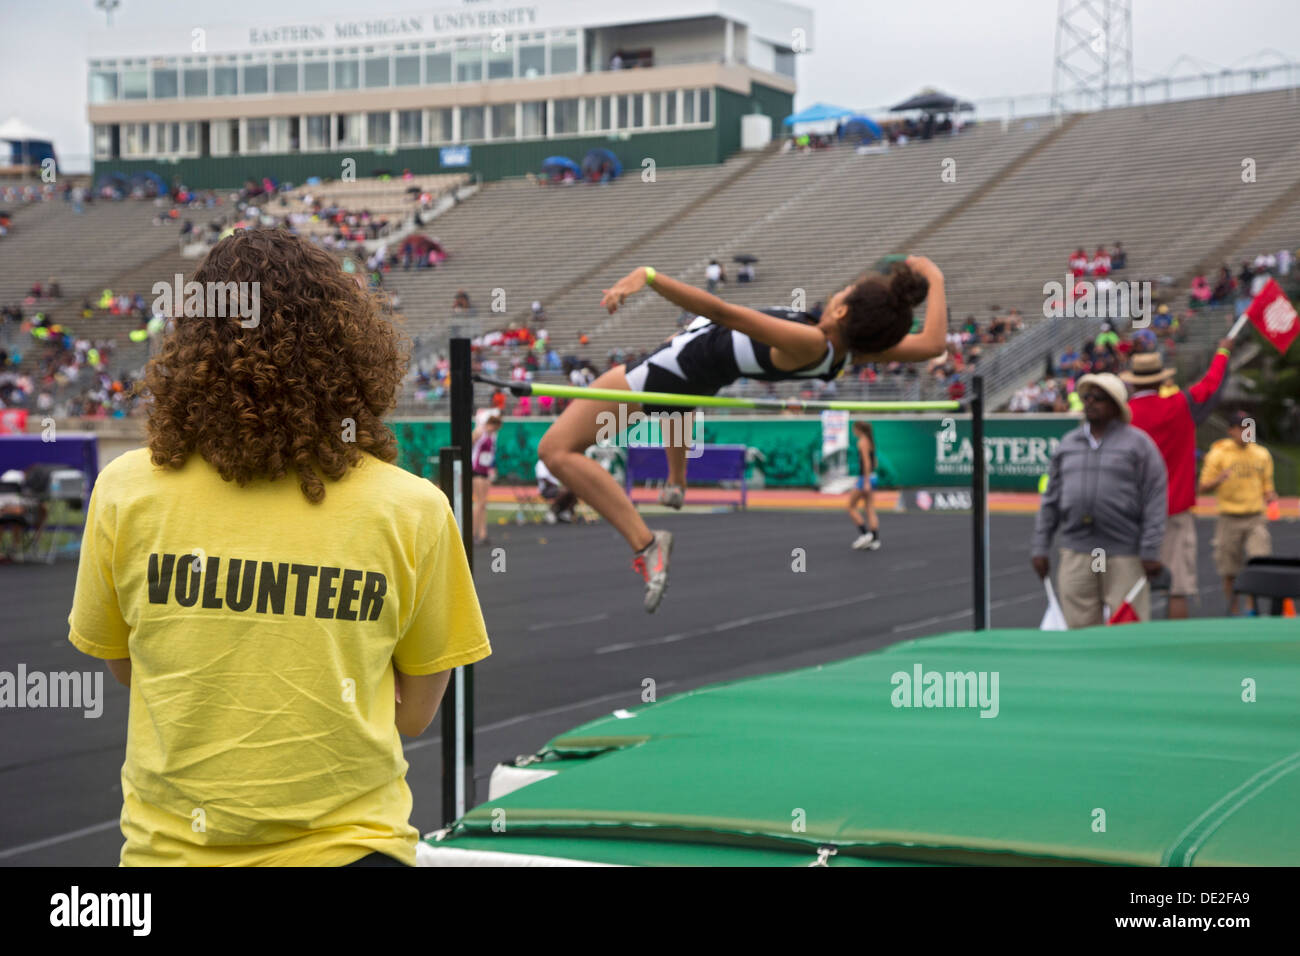 Ypsilanti, Michigan - High jump competition during the track and field events at the AAU Junior Olympic Games. - Stock Image